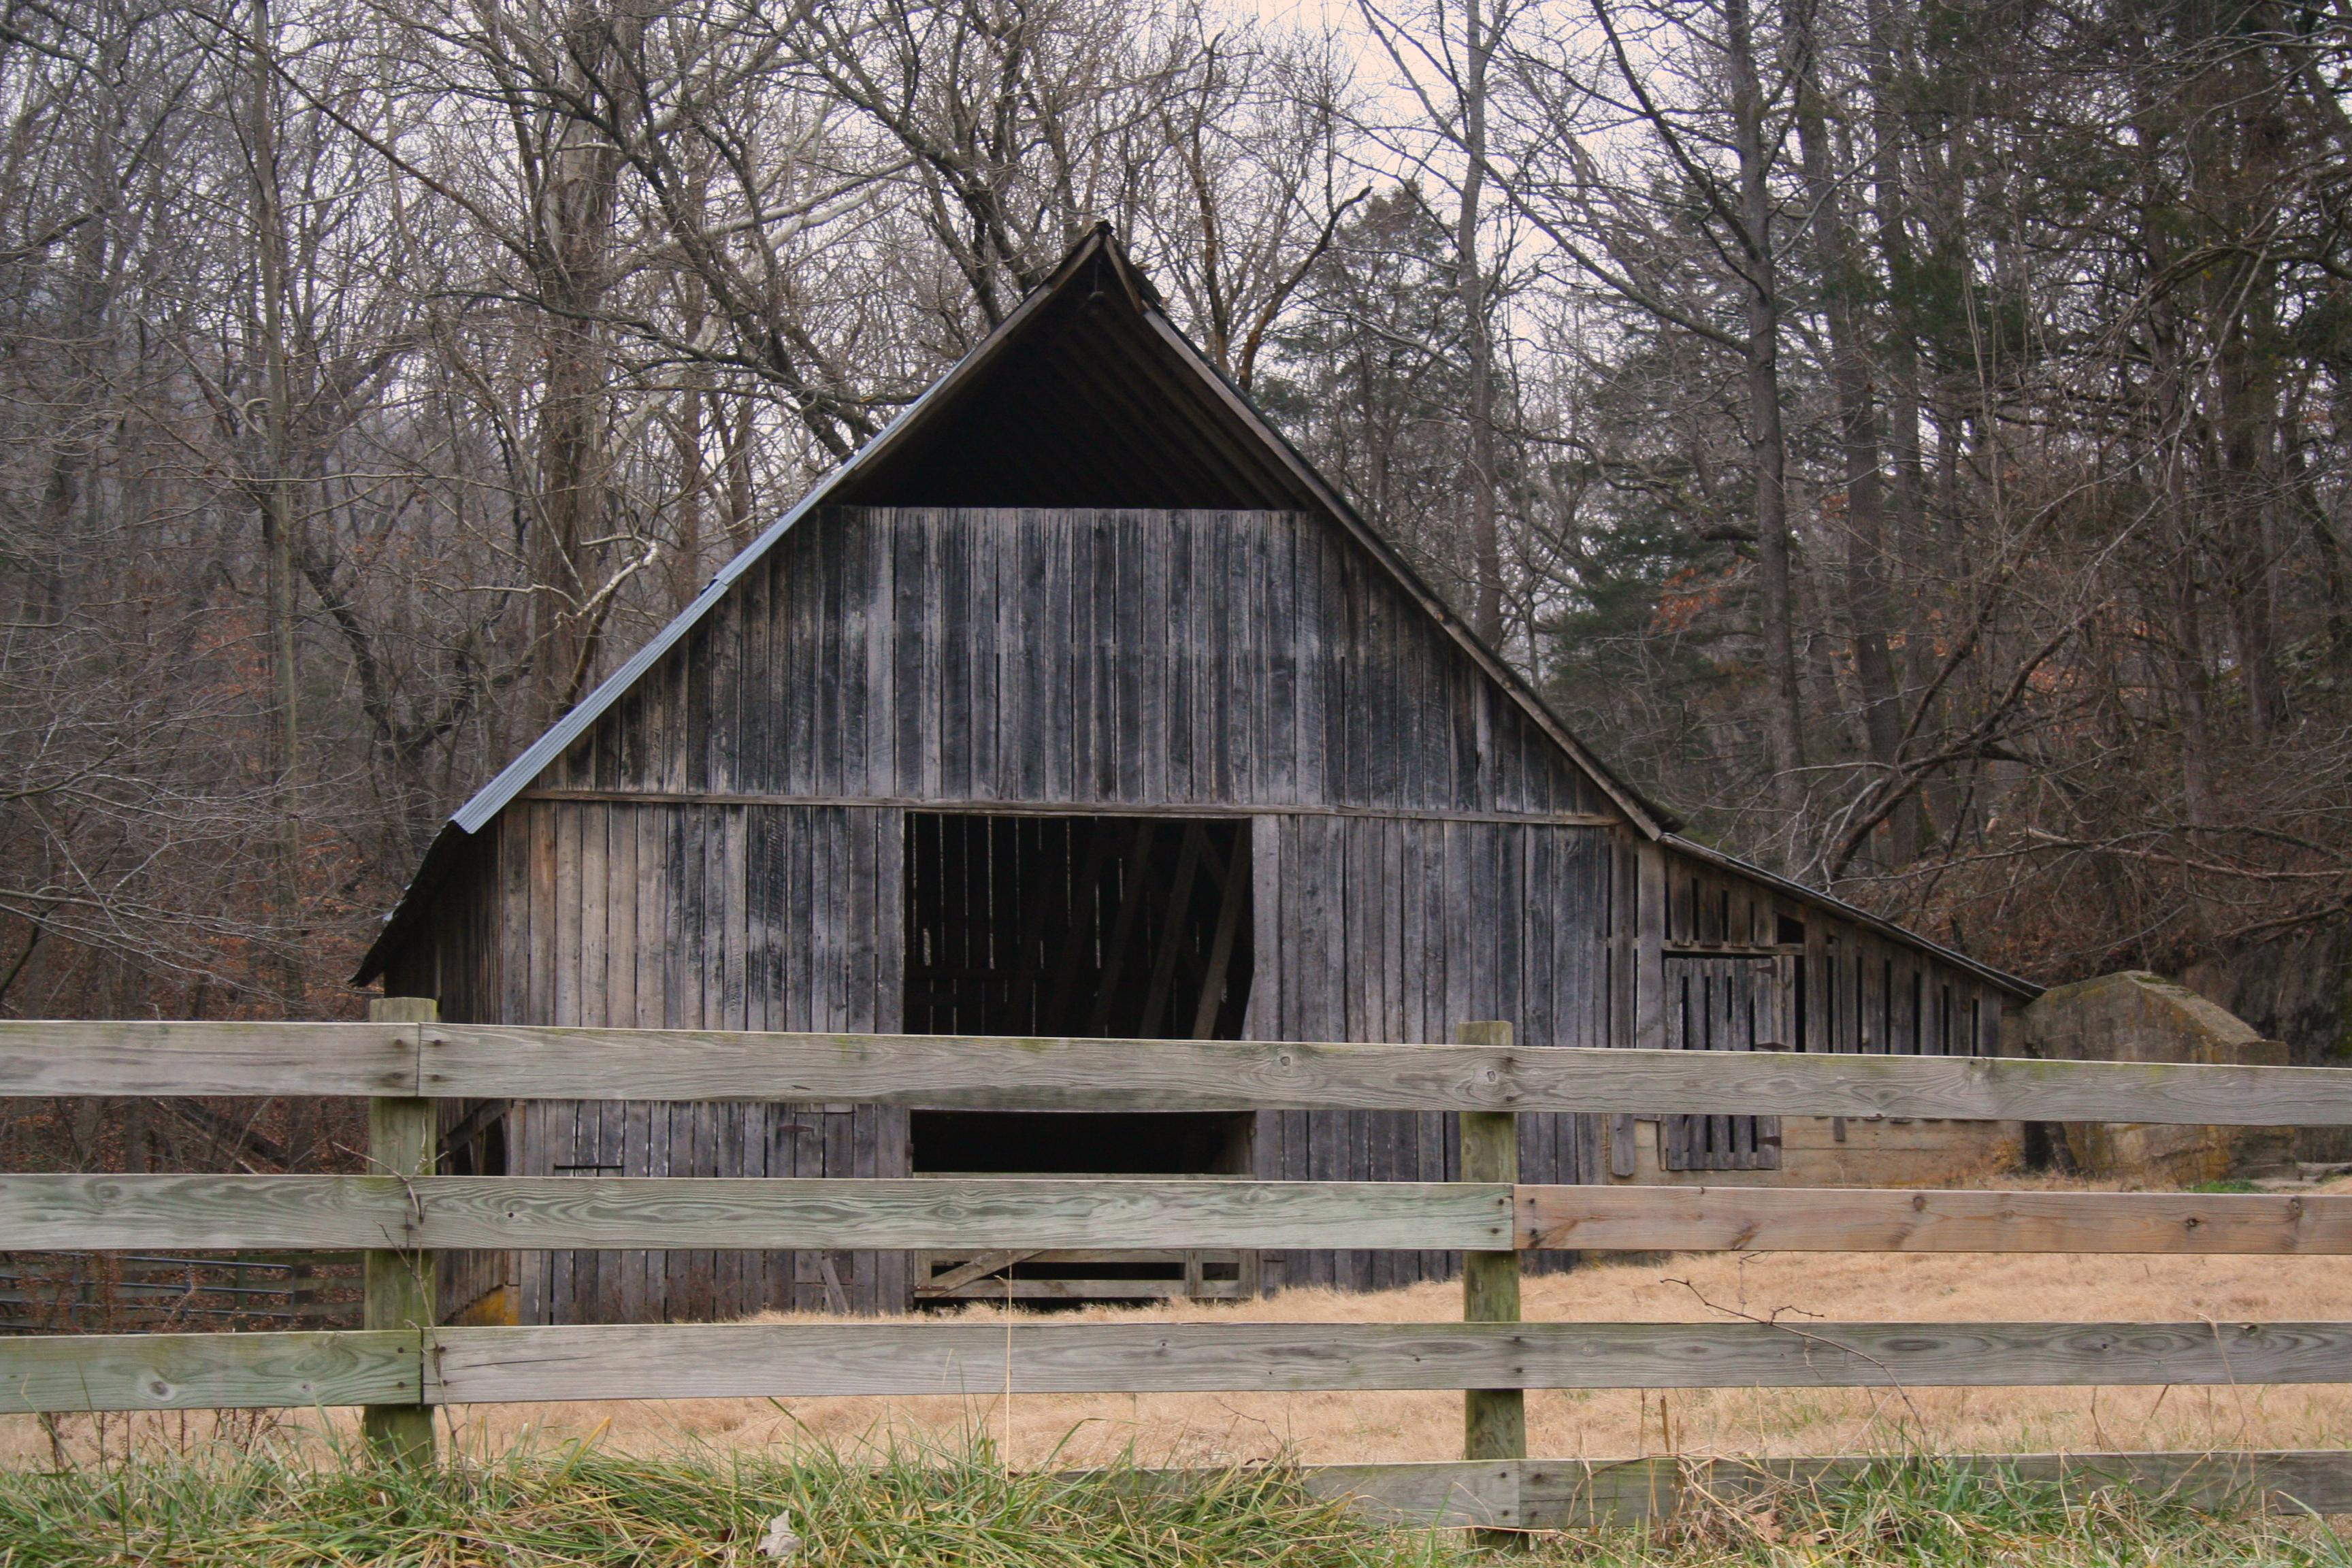 Building An Old Fashioned Pole Barn Part